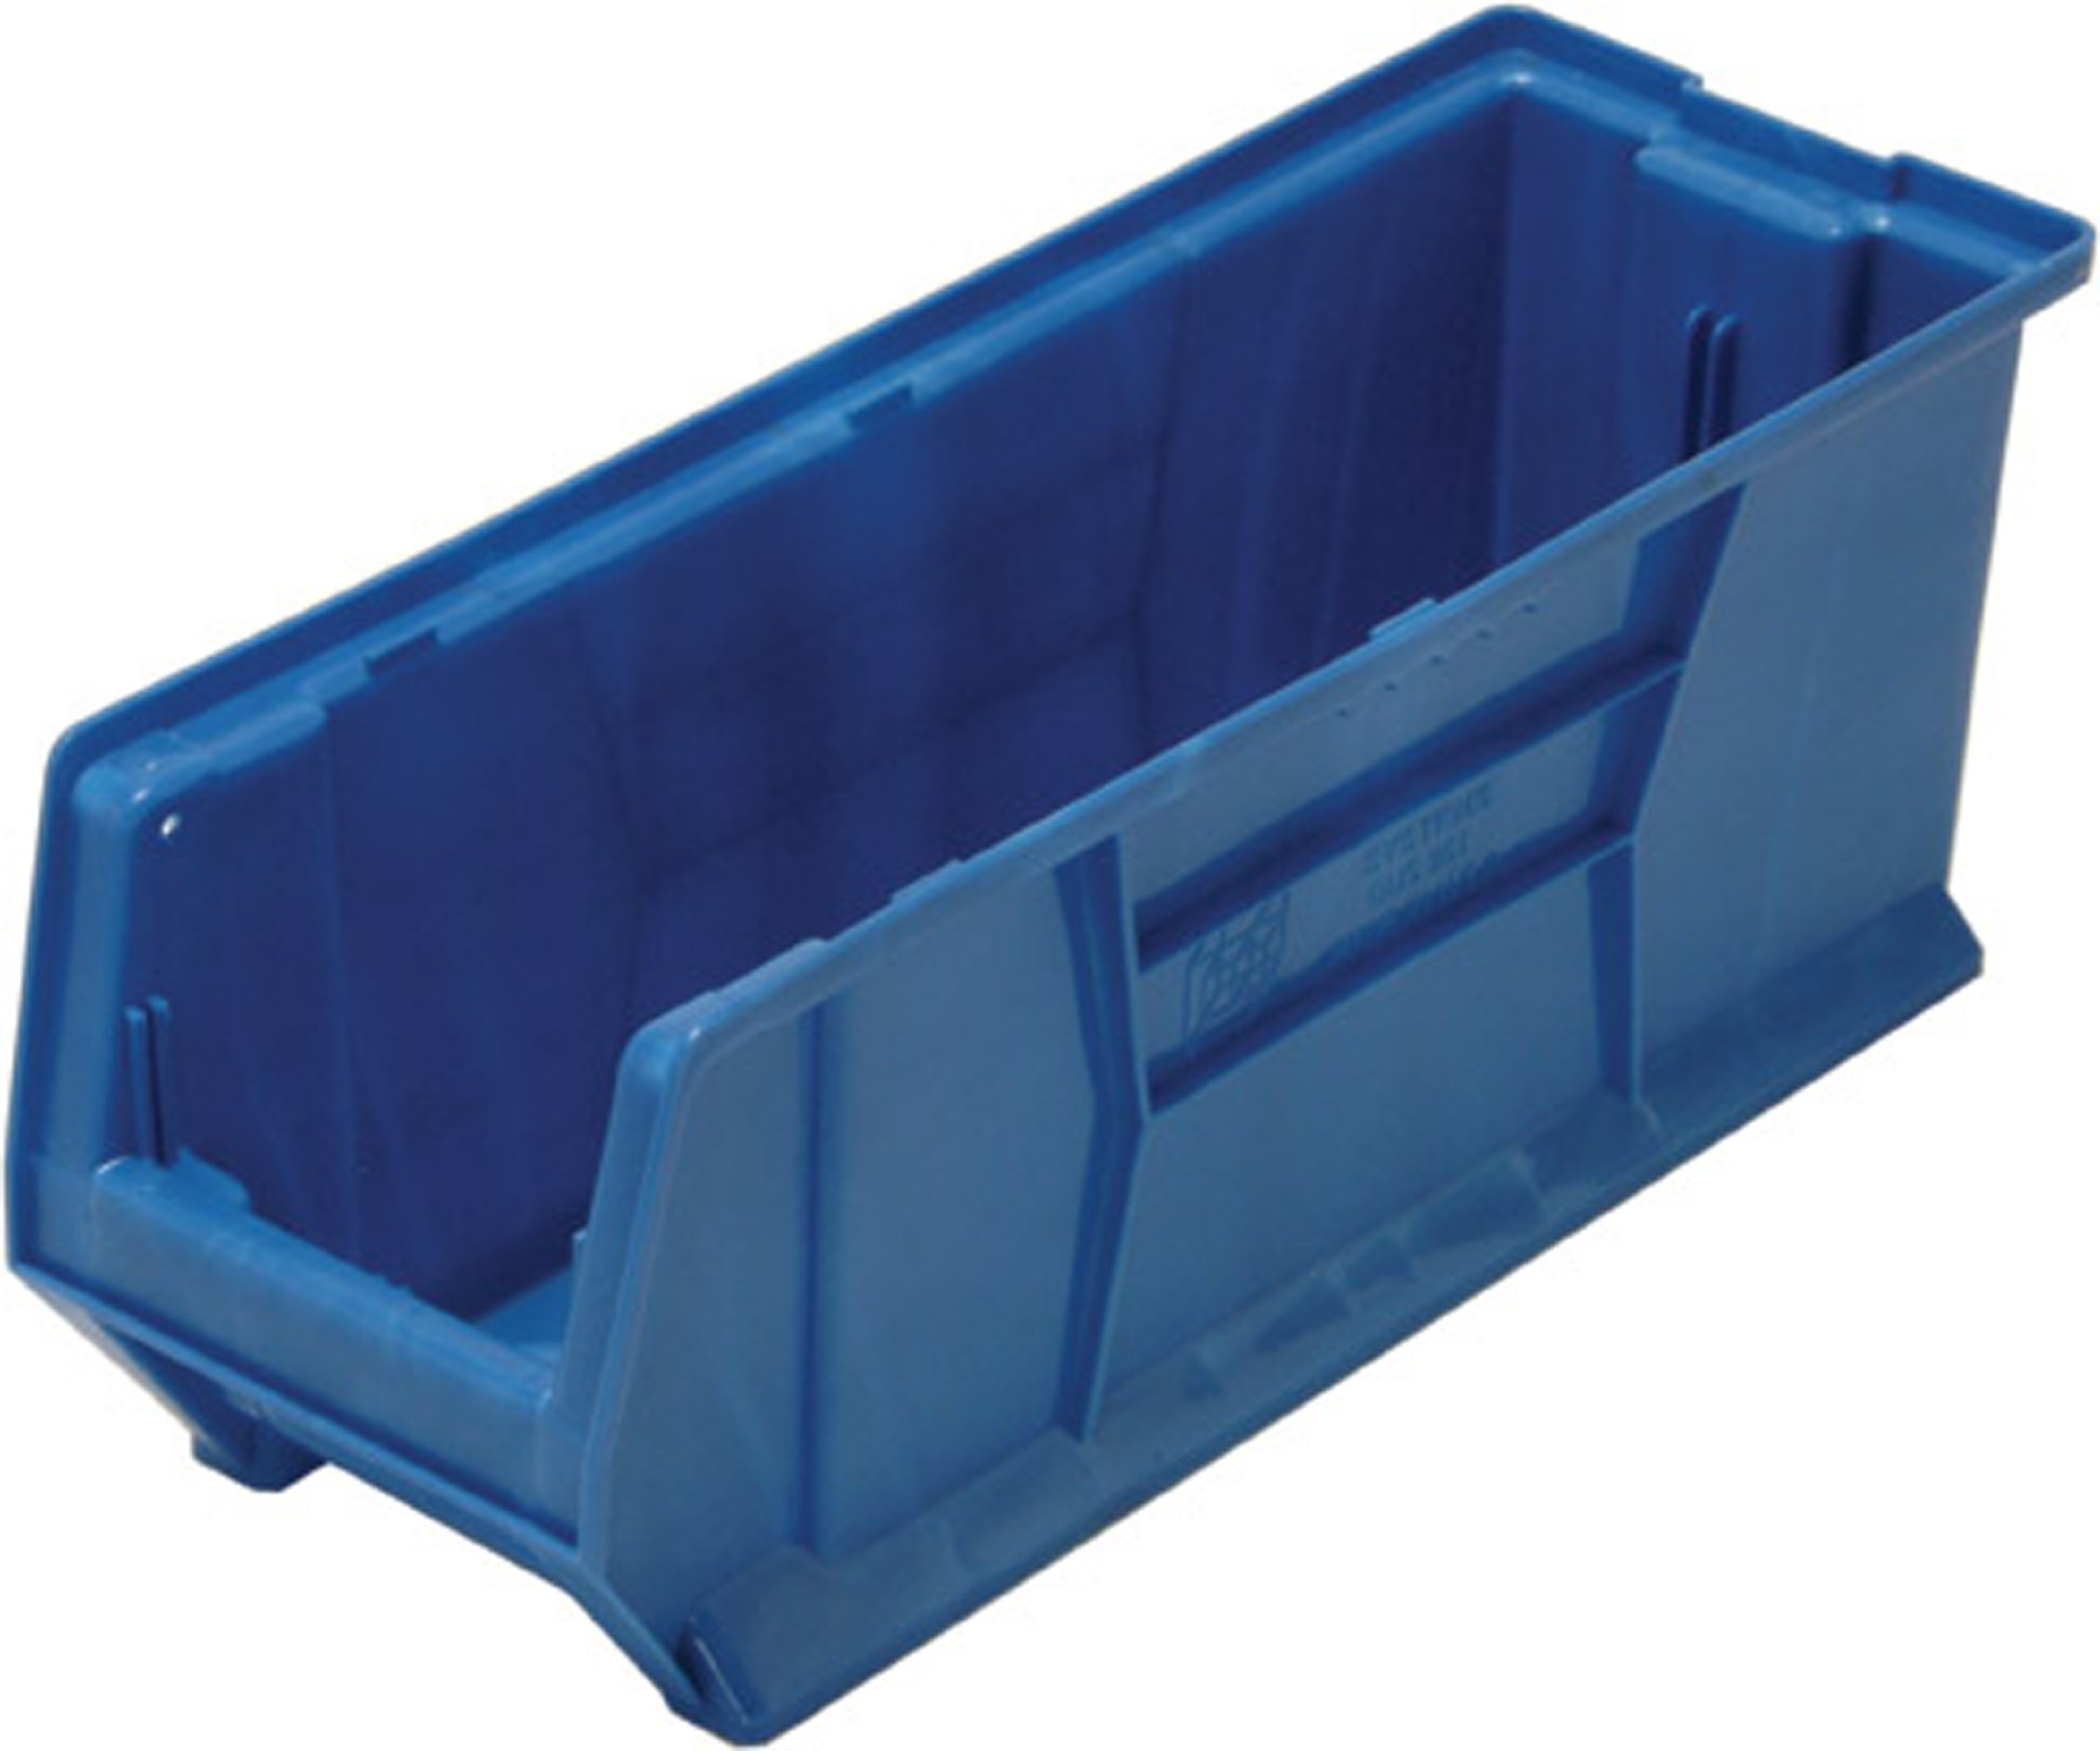 Quantum QUS951 Plastic Storage Stacking Hulk Container, 24-Inch by 8-Inch by 9-Inch, Blue, Case of 6